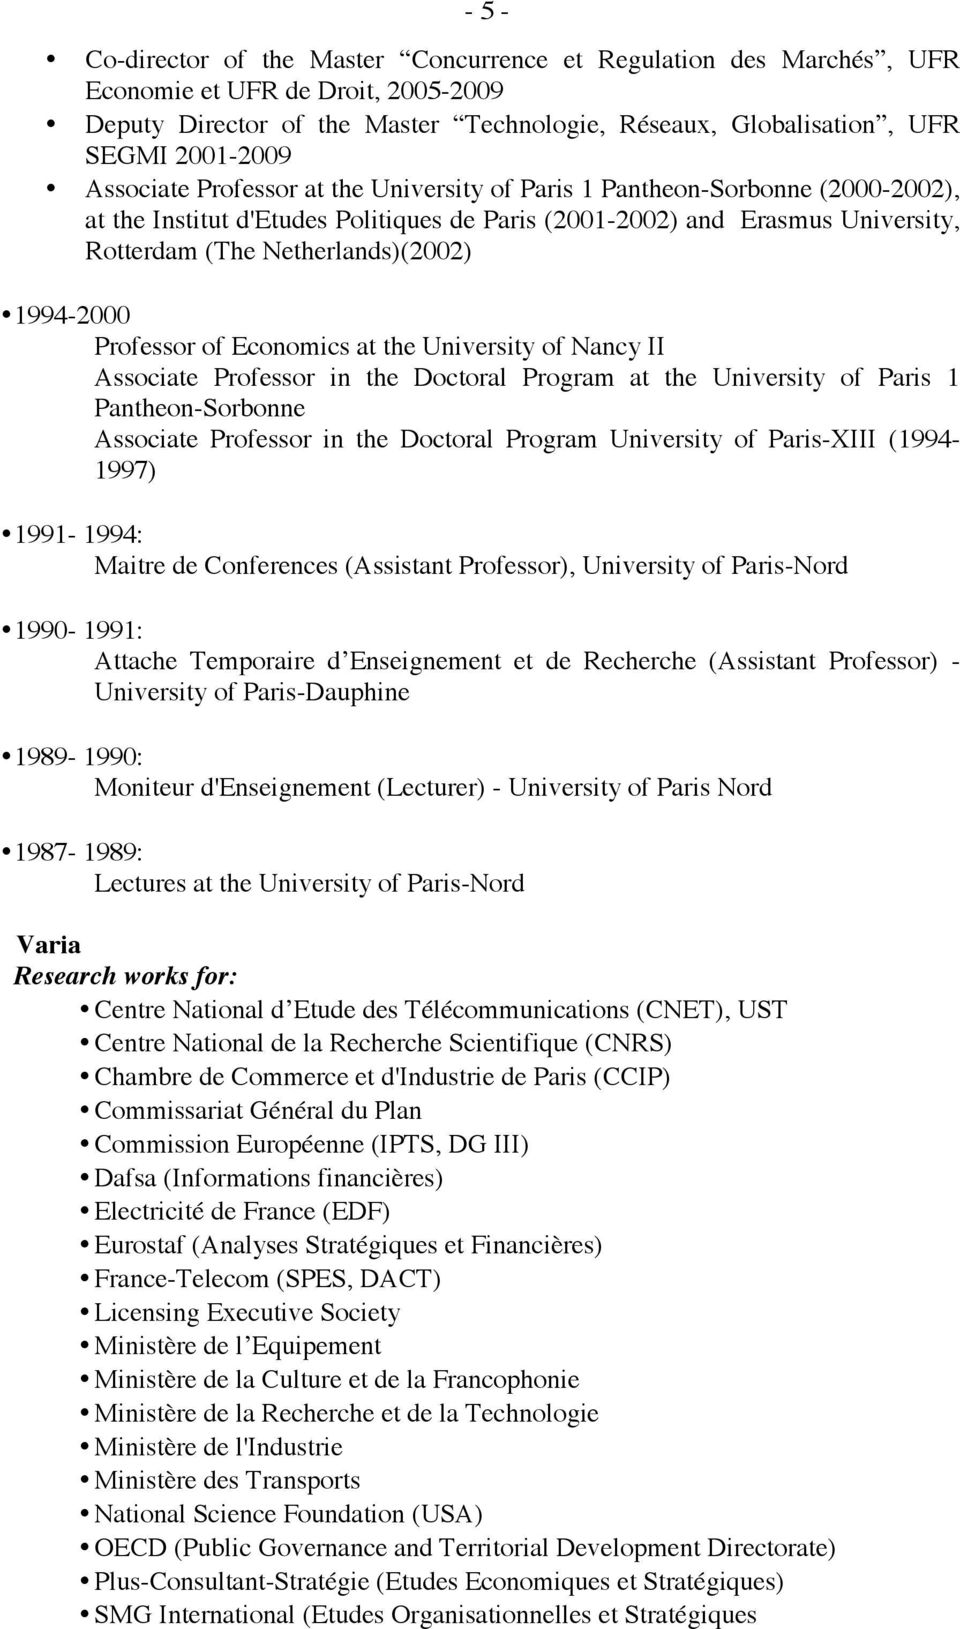 1994-2000 Professor of Economics at the University of Nancy II Associate Professor in the Doctoral Program at the University of Paris 1 Pantheon-Sorbonne Associate Professor in the Doctoral Program